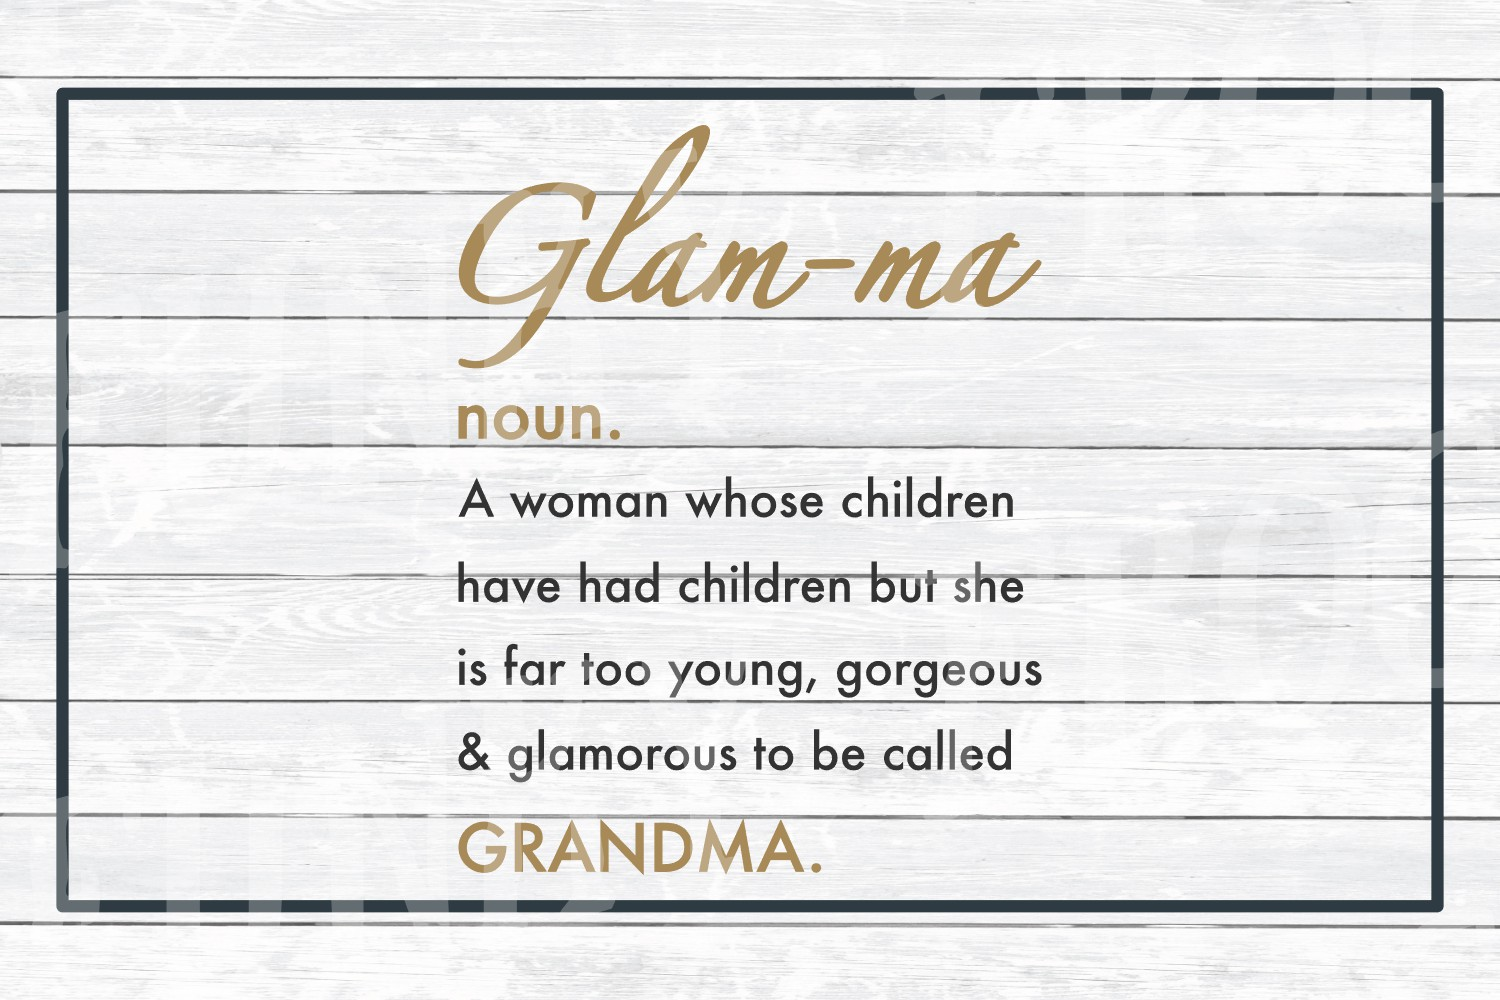 Definition of Glam-ma SVG for Grandma on Mother's Day example image 2